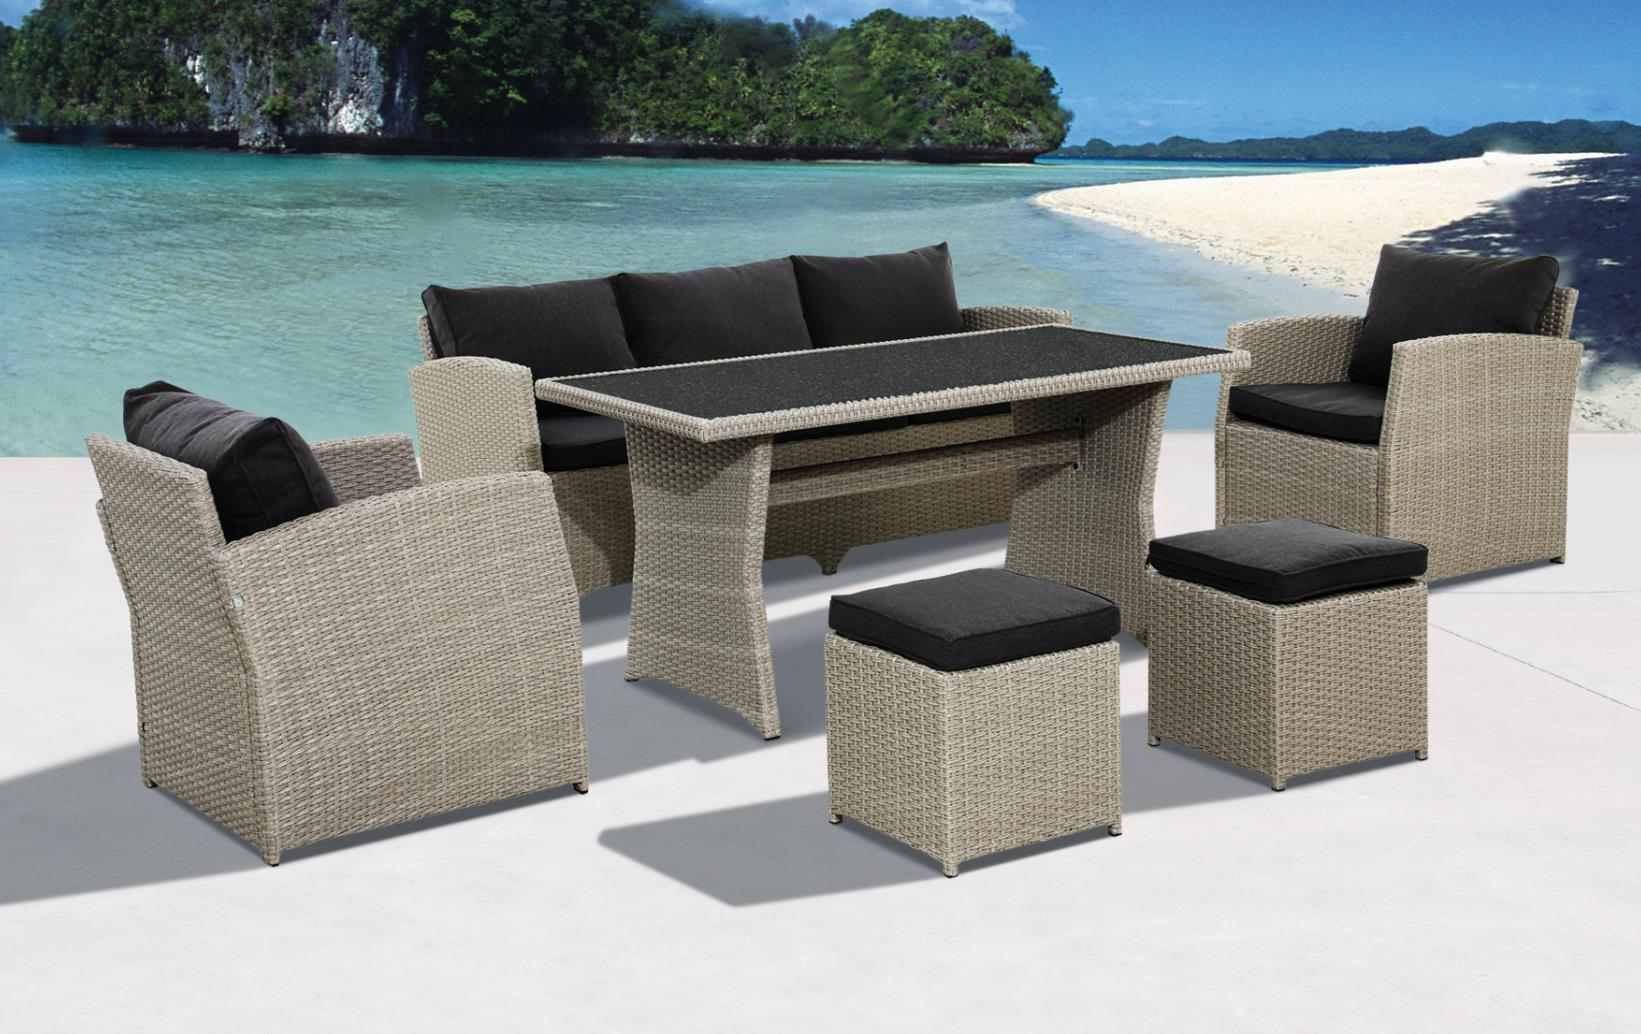 skyline polyrattan lounge gartenm bel sitzgruppe natur. Black Bedroom Furniture Sets. Home Design Ideas